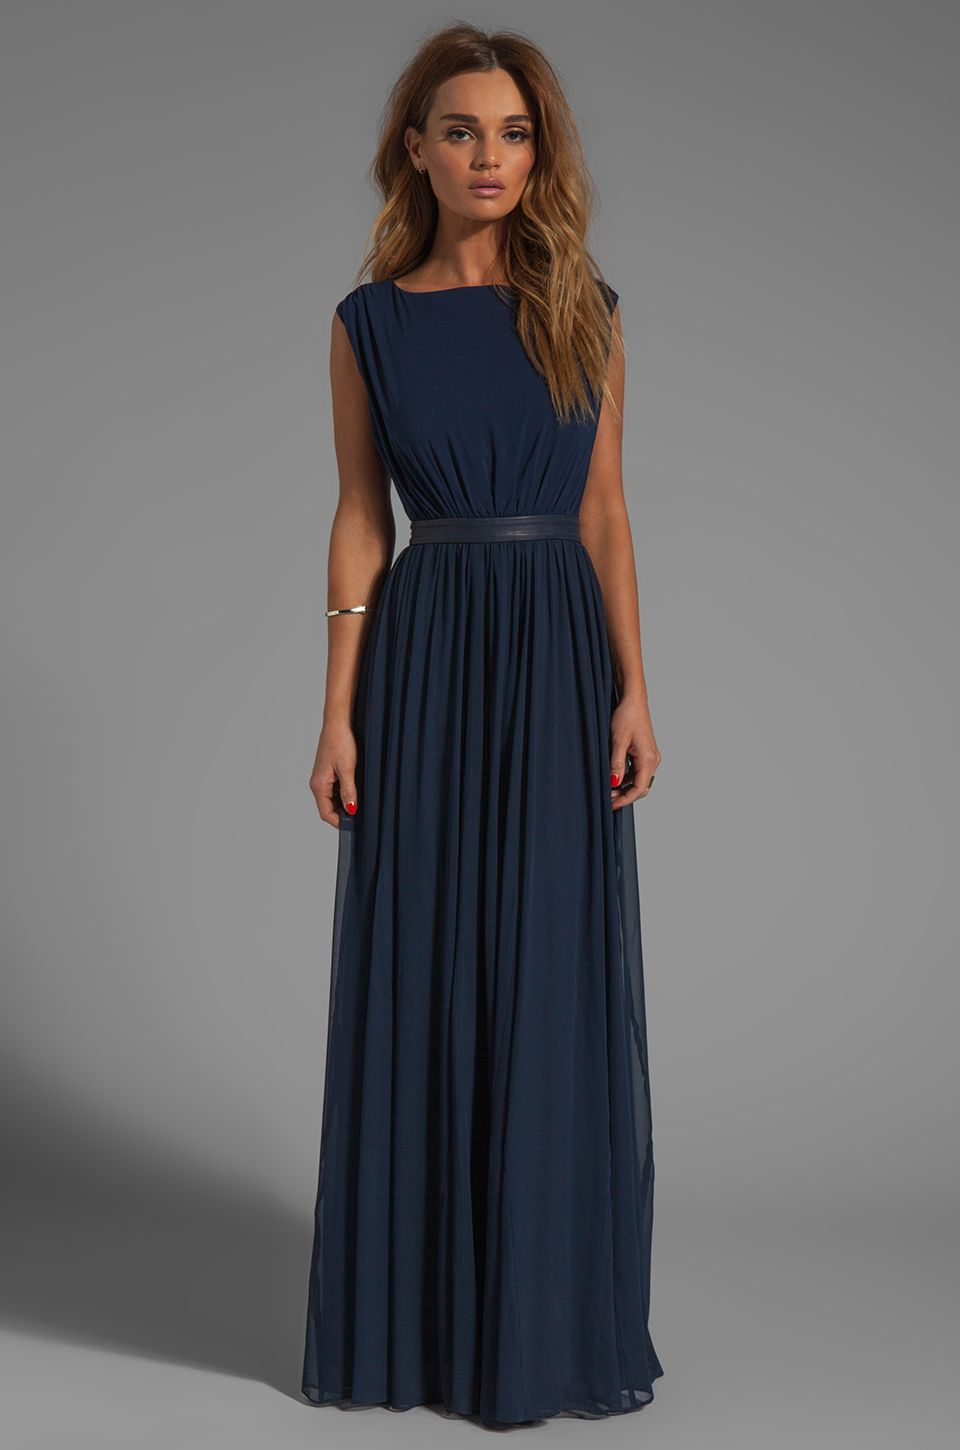 Alice olivia triss sleeveless maxi dress with leather trim in navy